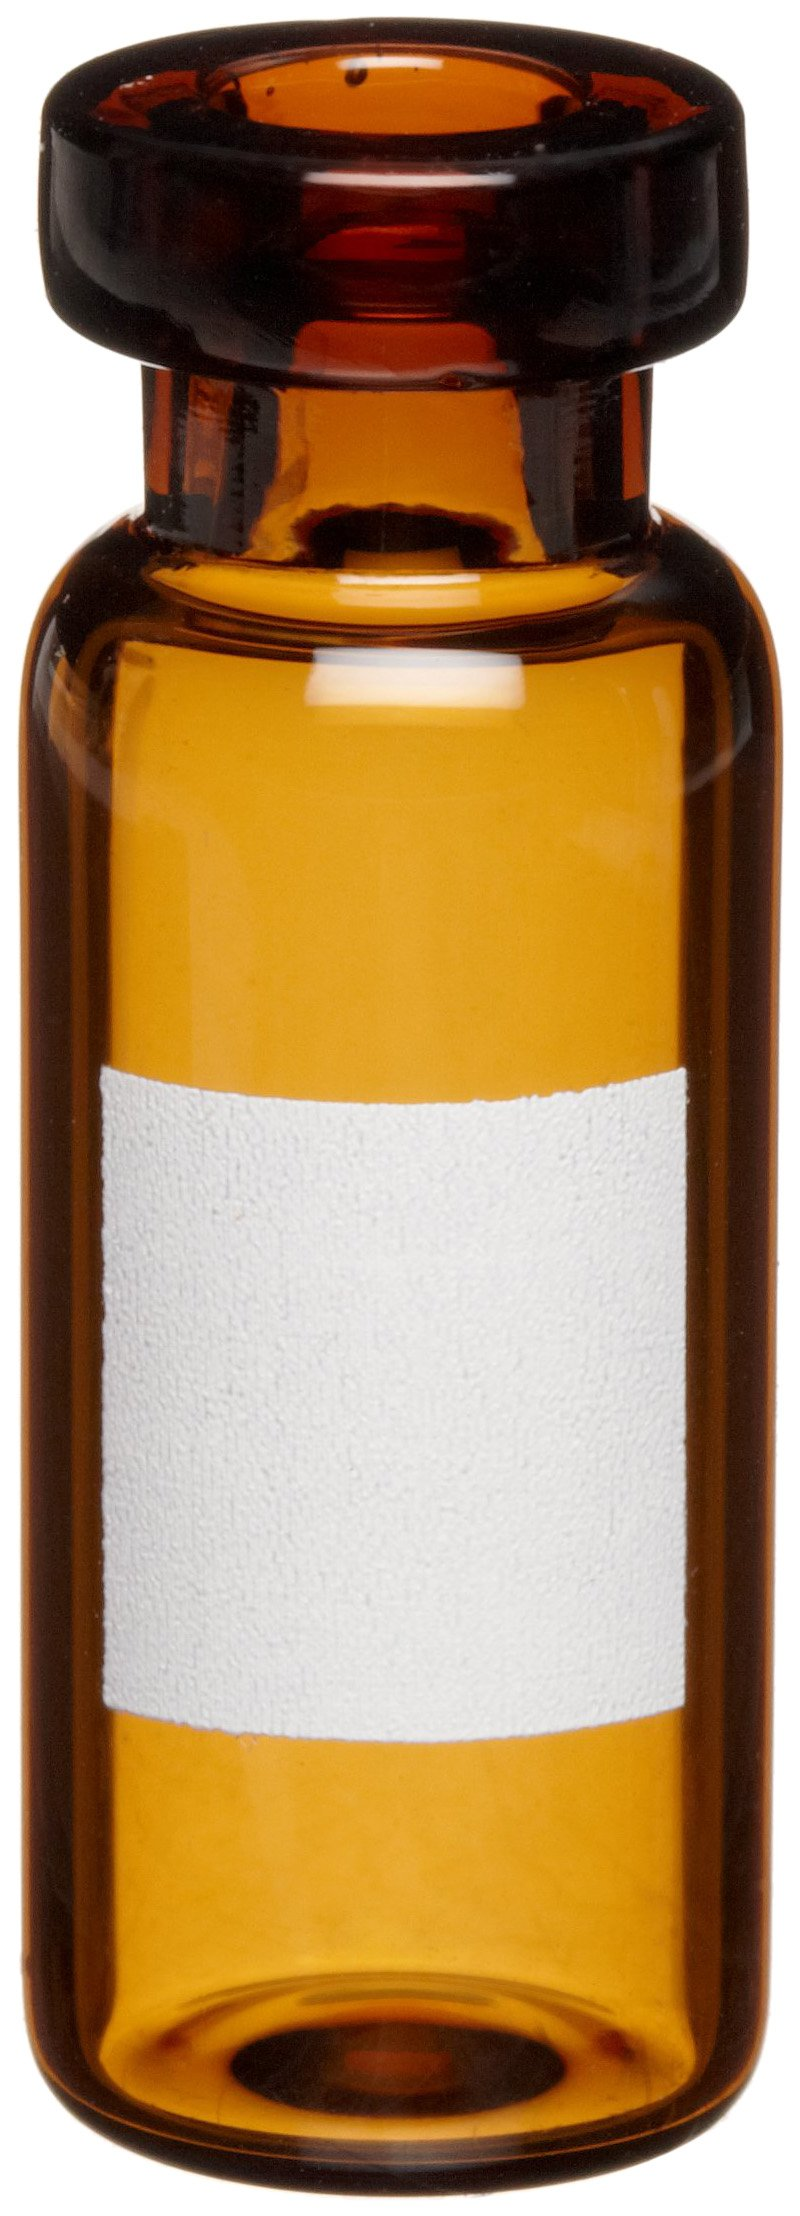 Wheaton 223692-01 Borosilicate Glass 1.5mL Standard Crimp Top Vial, with Writing Patch, Amber (Case of 1000)